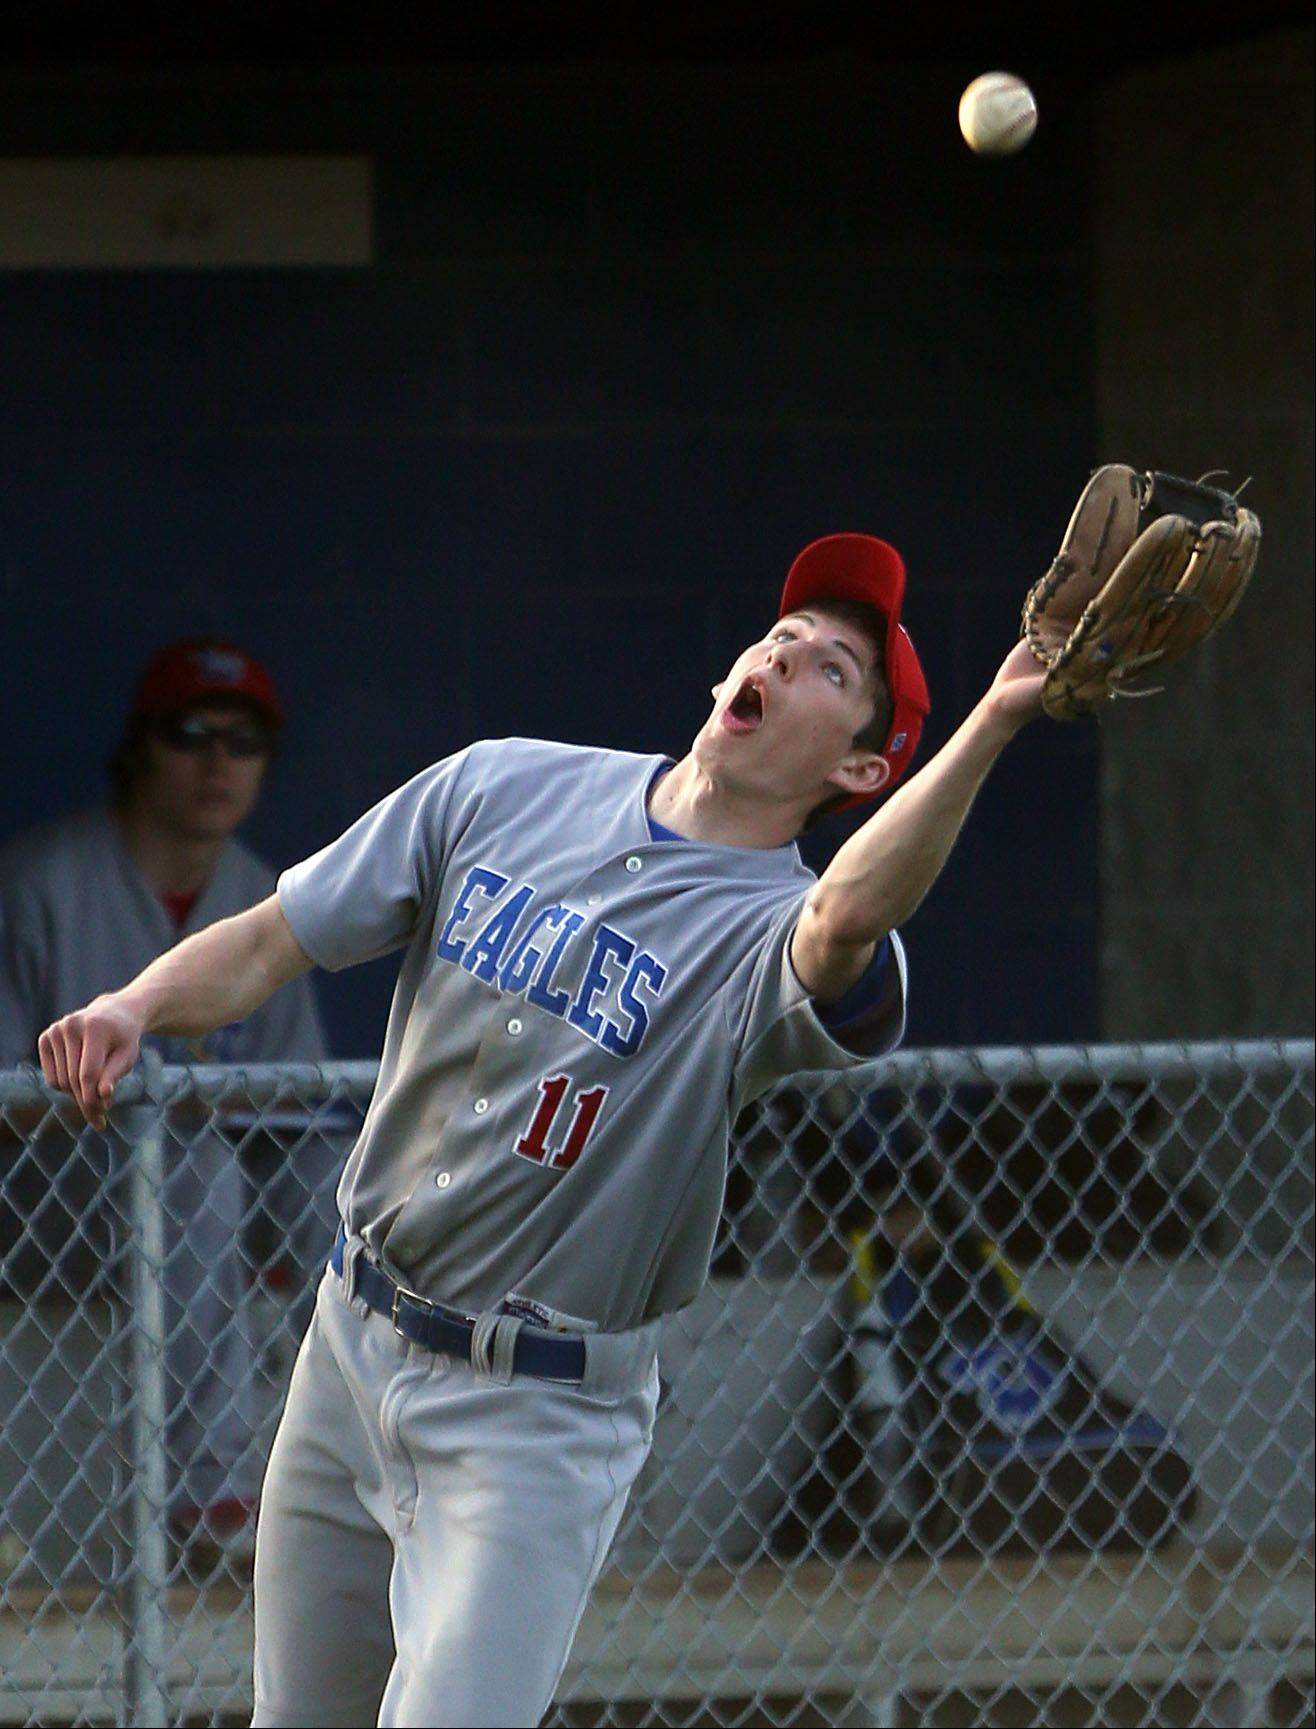 Steve Lundy/slundy@dailyherald.comLakes' Kyle Vanderwall makes a catch in foul territory as the ball drifts close to their bench during their game Tuesday at Lake Zurich High School.